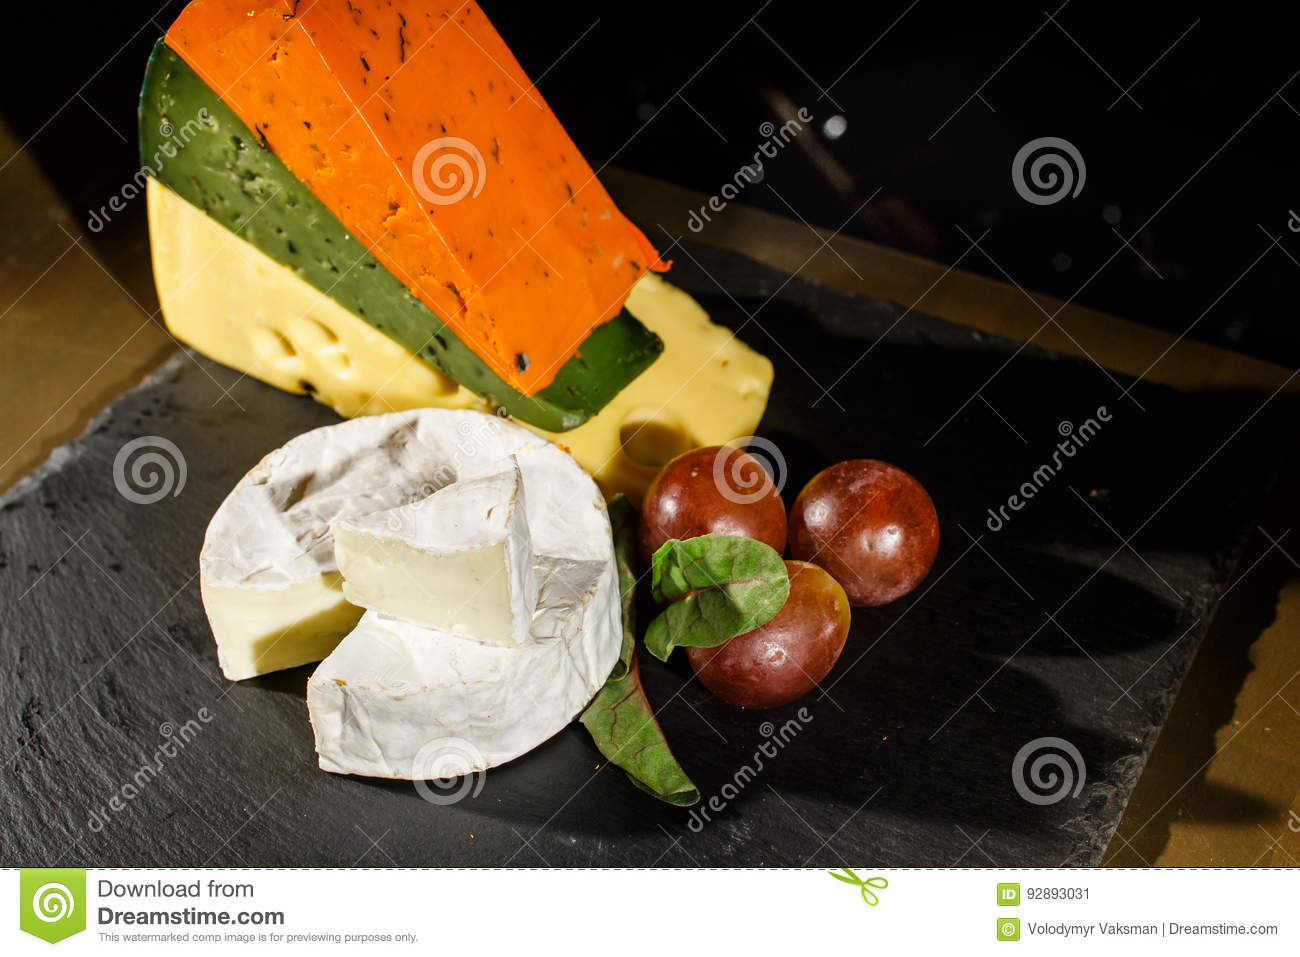 Cheese and black olives